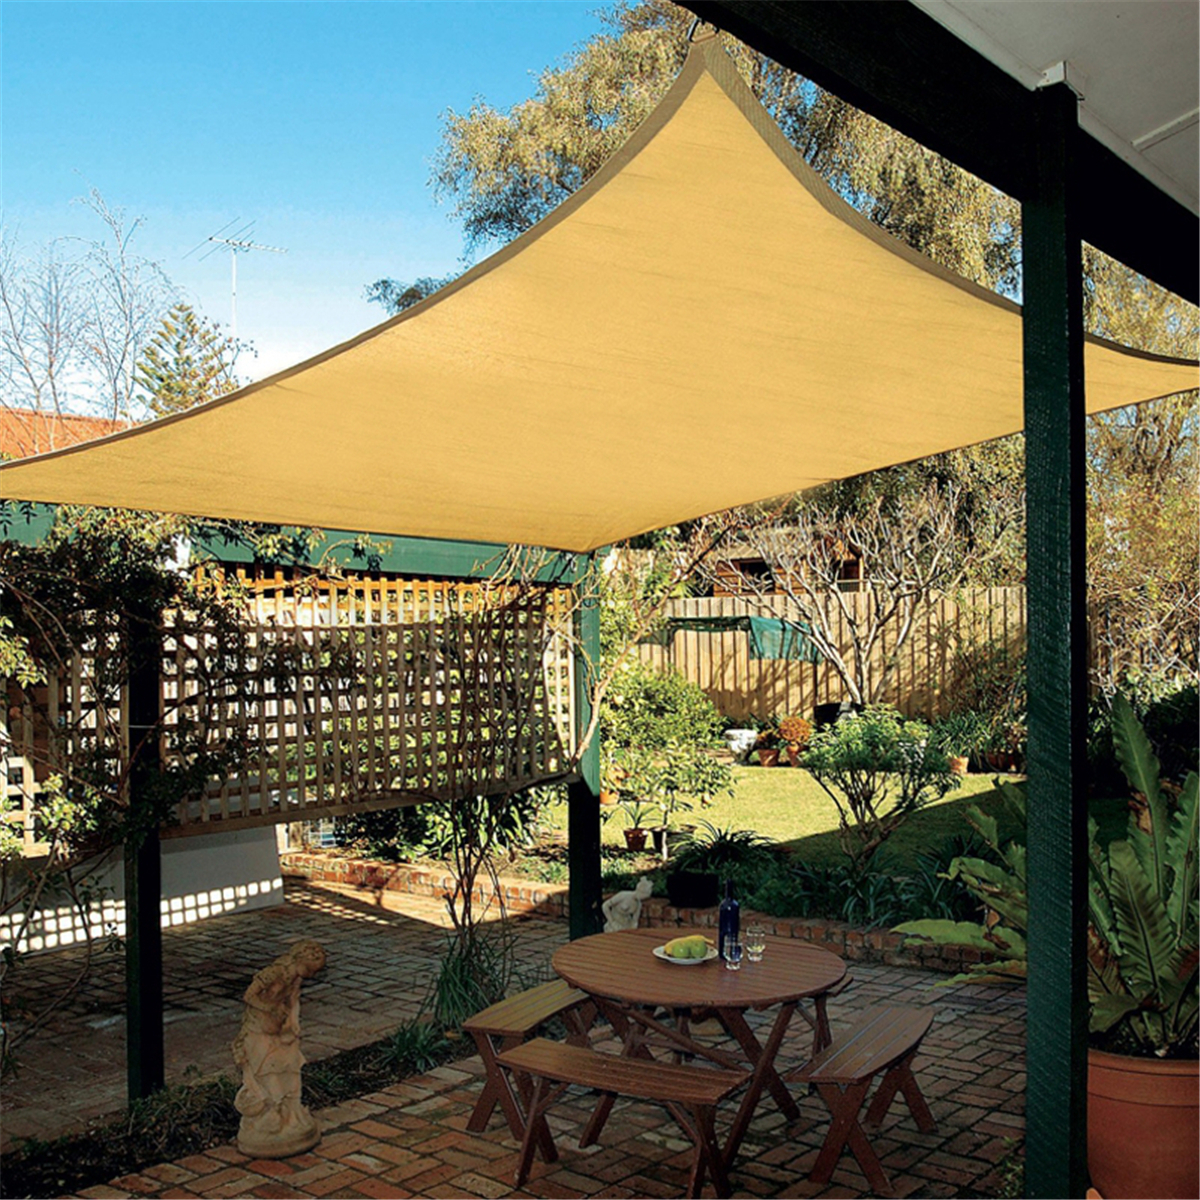 Beige Top Sun Canopy Shade Shelter Sail Net Outdoor Garden